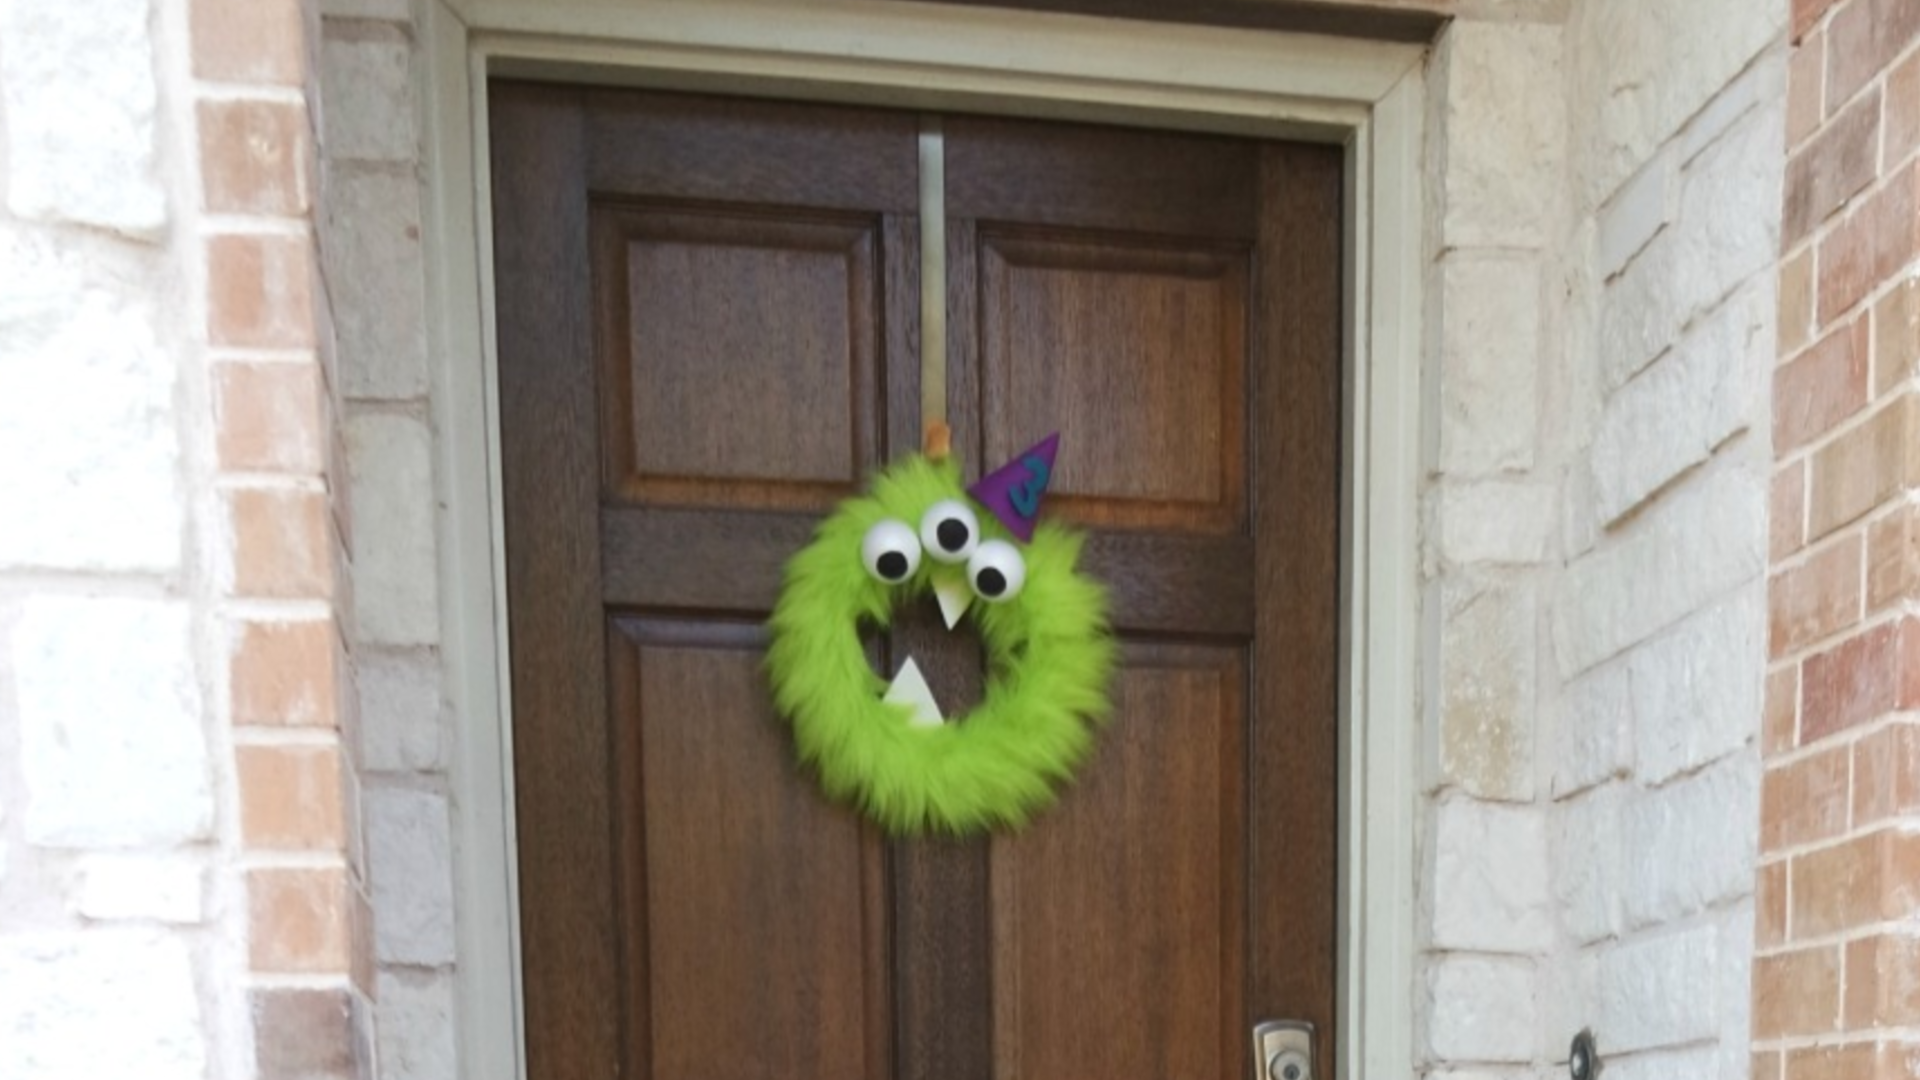 This adorable furry monster wreath doubles as birthday AND Halloween decor. A quick and low-cost DIY addition to your monster birthday decorations. #monsterparty #monsterbirthday